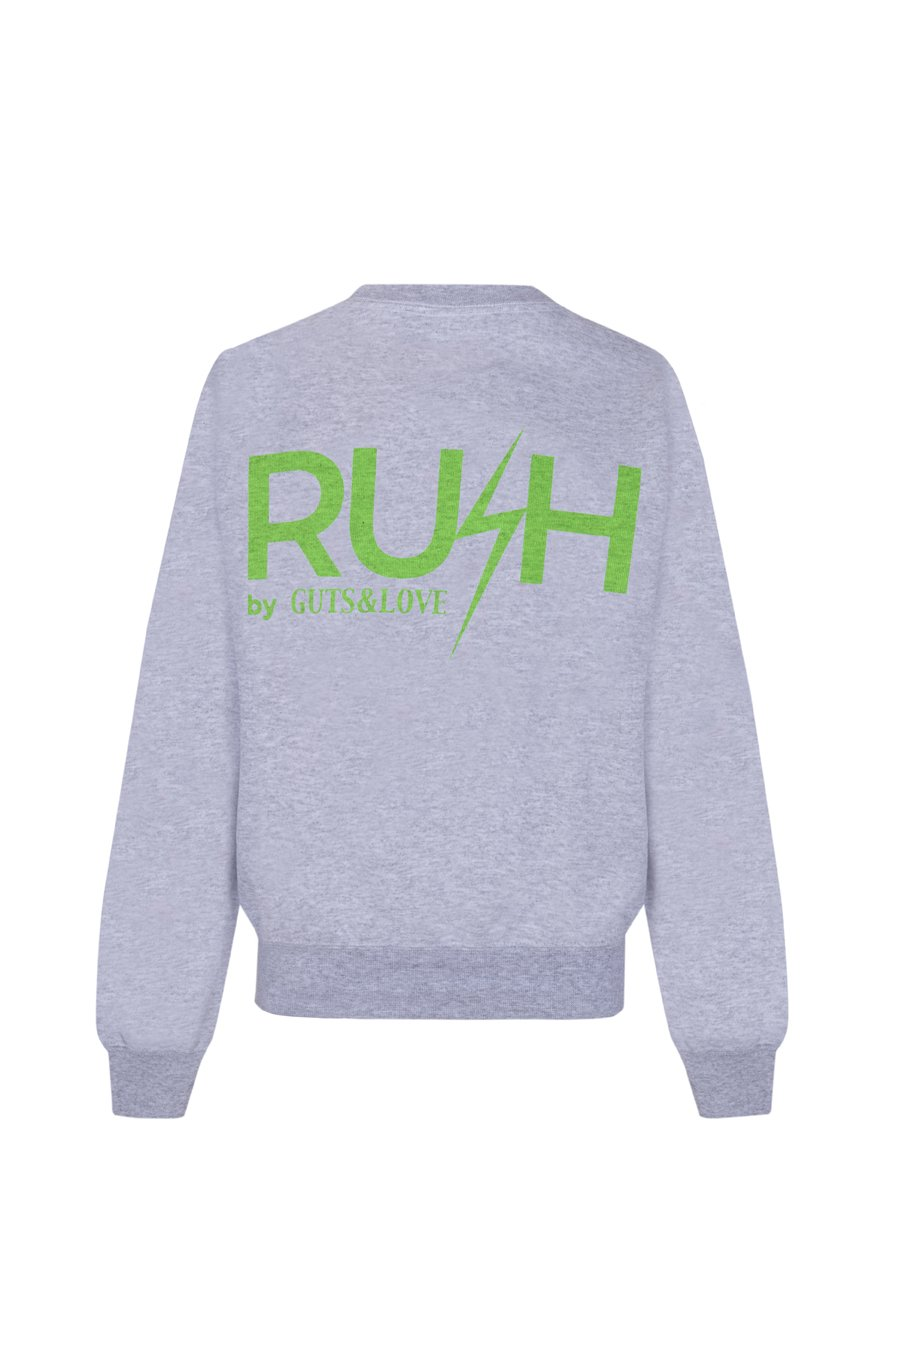 SMILE RUSH UNISEX SWEATSHIRT